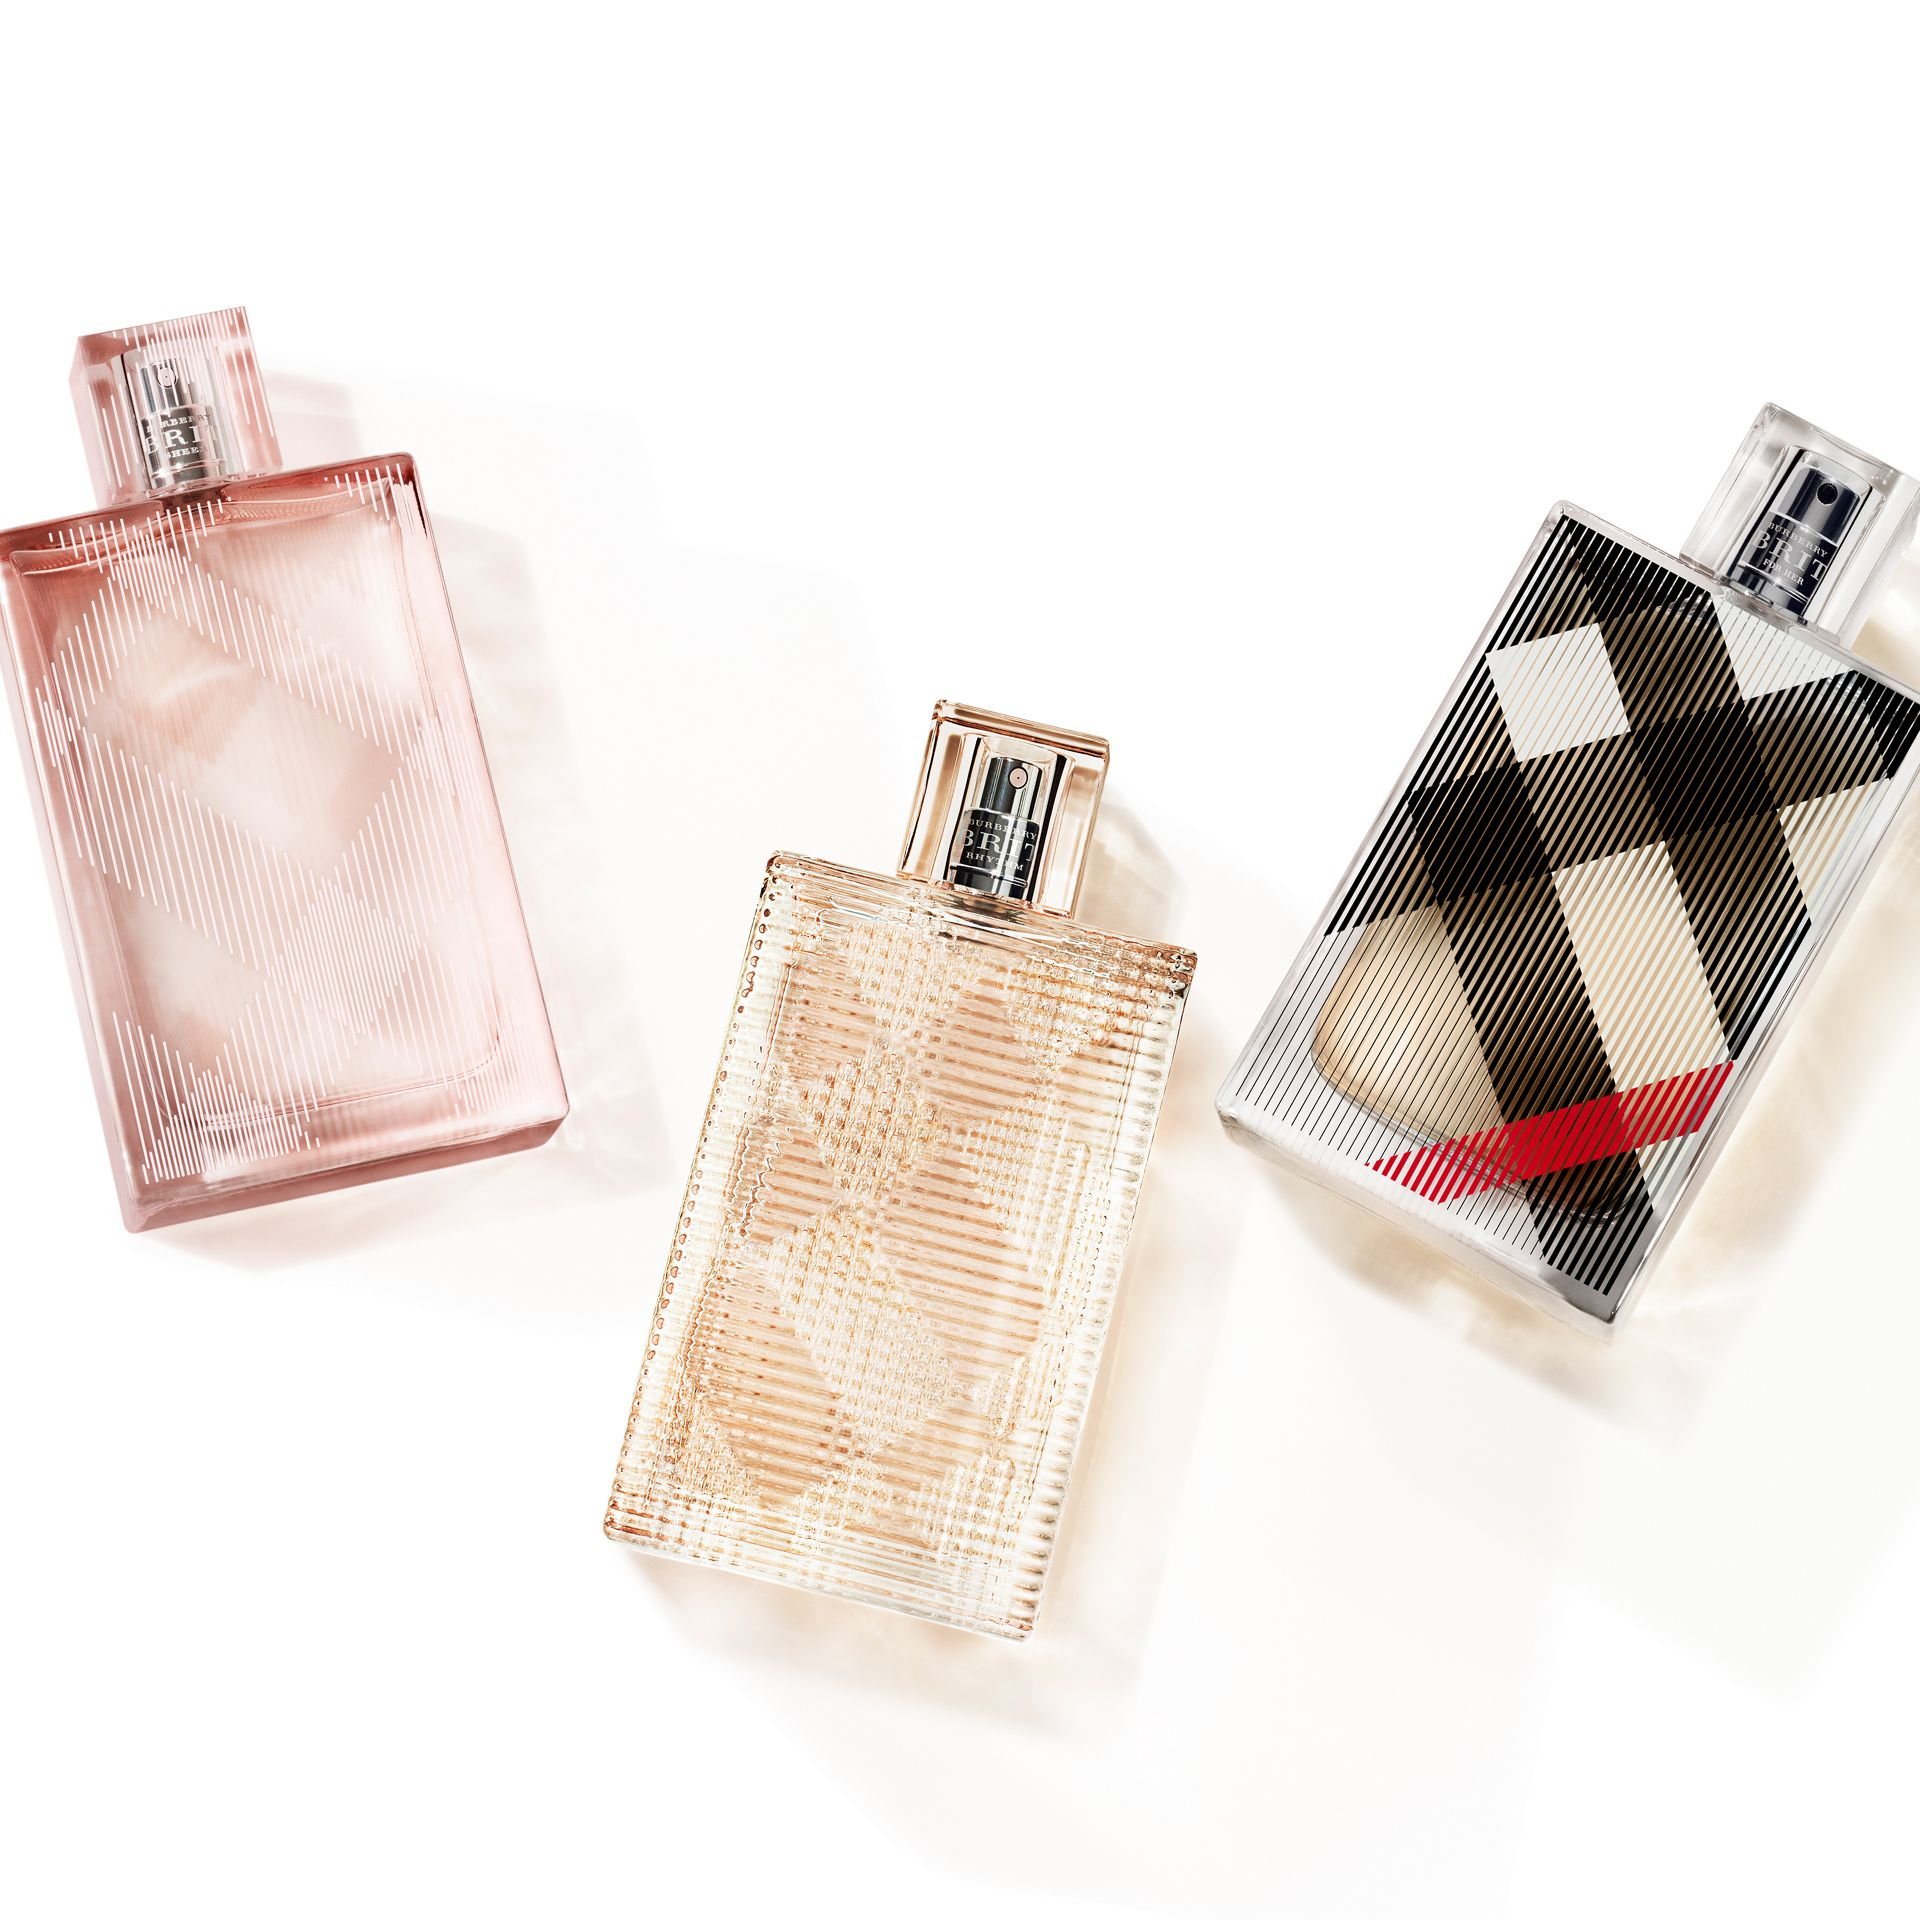 Burberry Brit For Her Eau de Toilette 100ml - Women | Burberry - gallery image 2